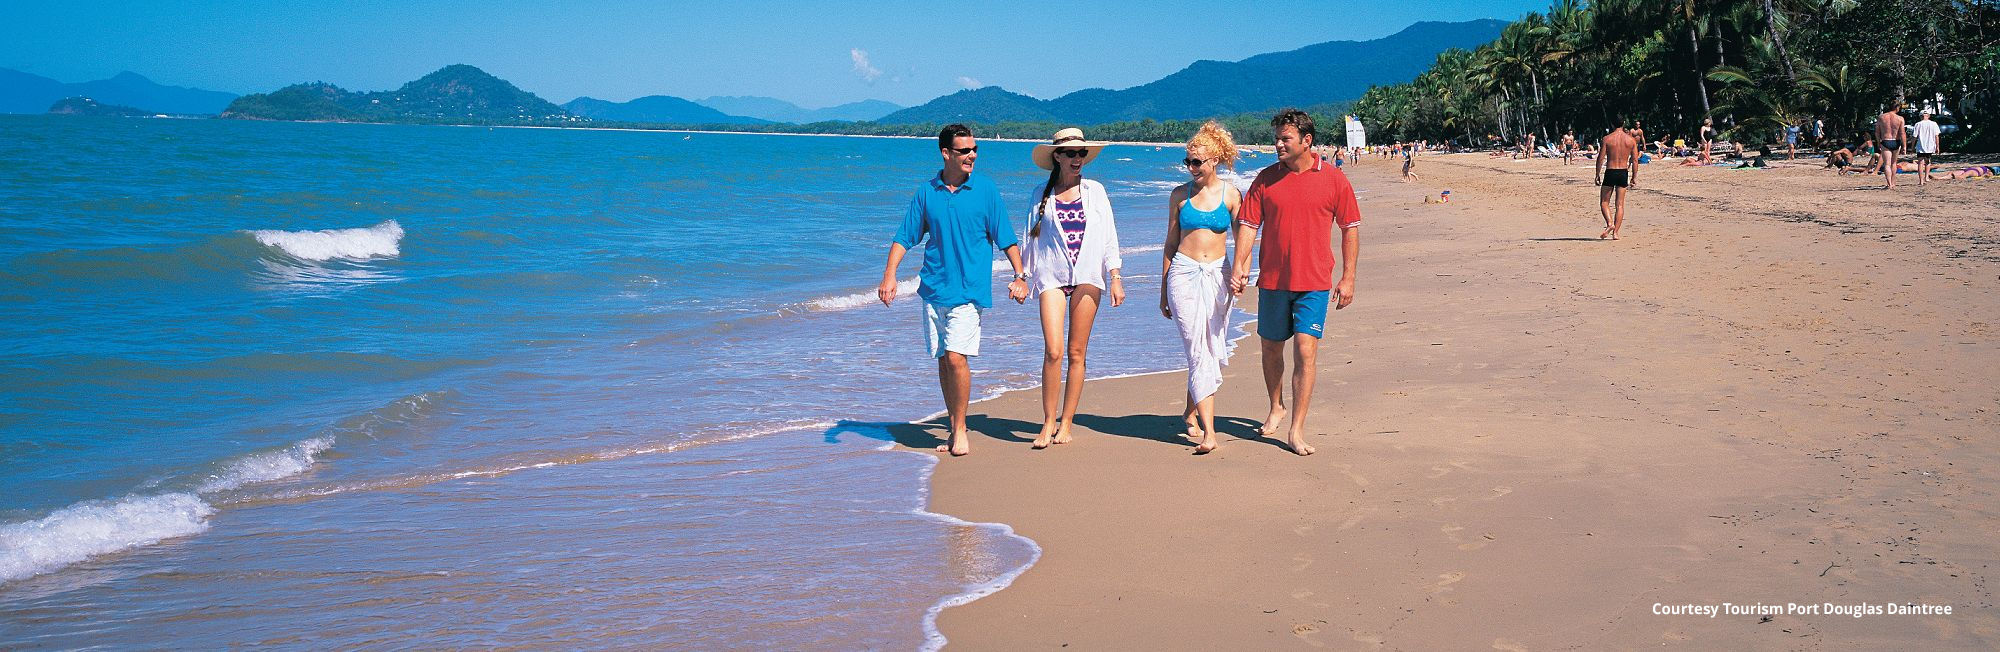 The Pavilions - 5 Minute Walk to 4 Mile Beach Port Douglas